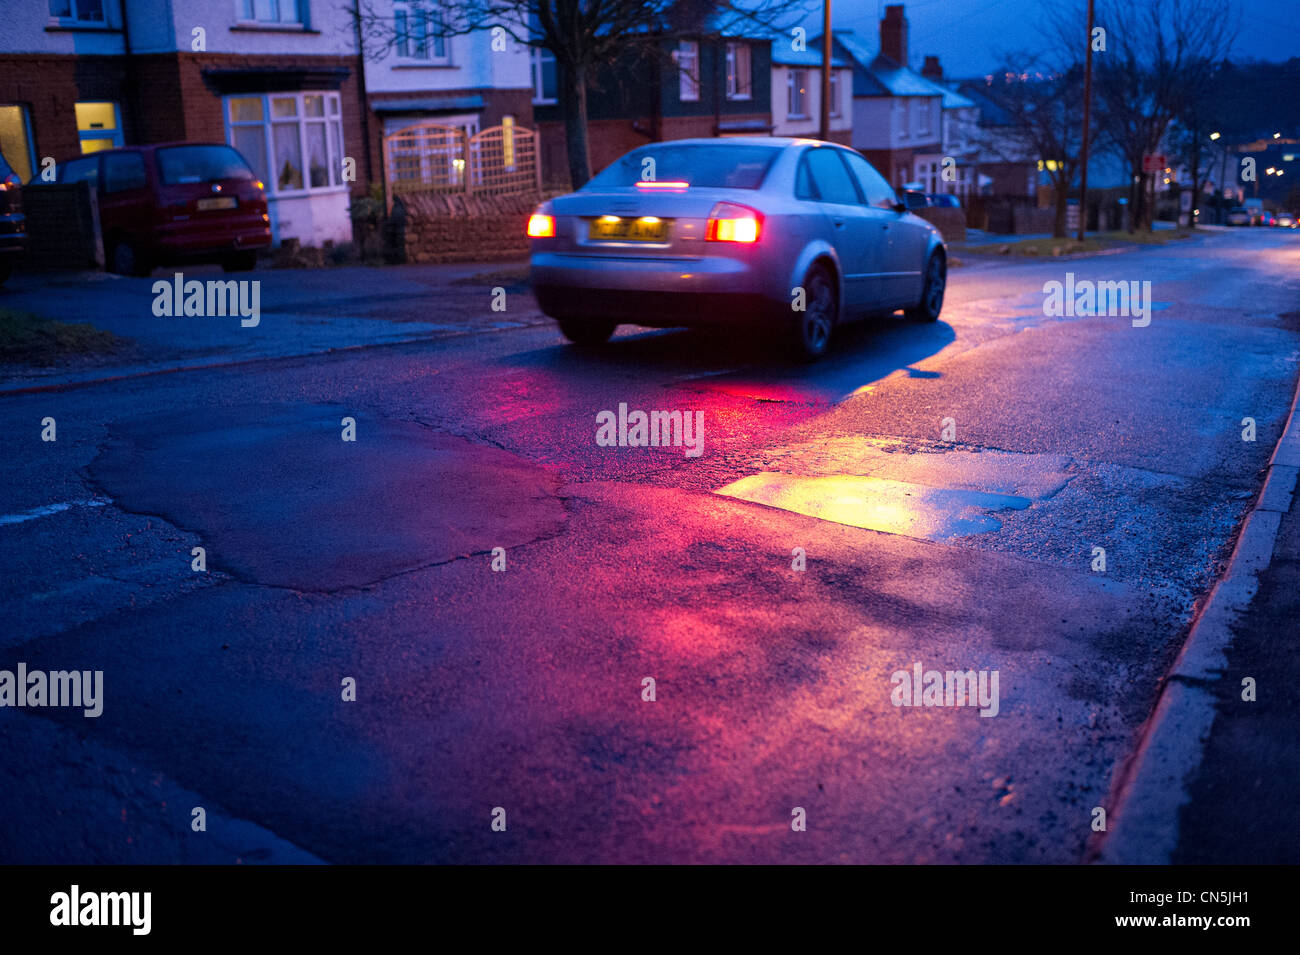 Potholes and patching in the road - Stock Image